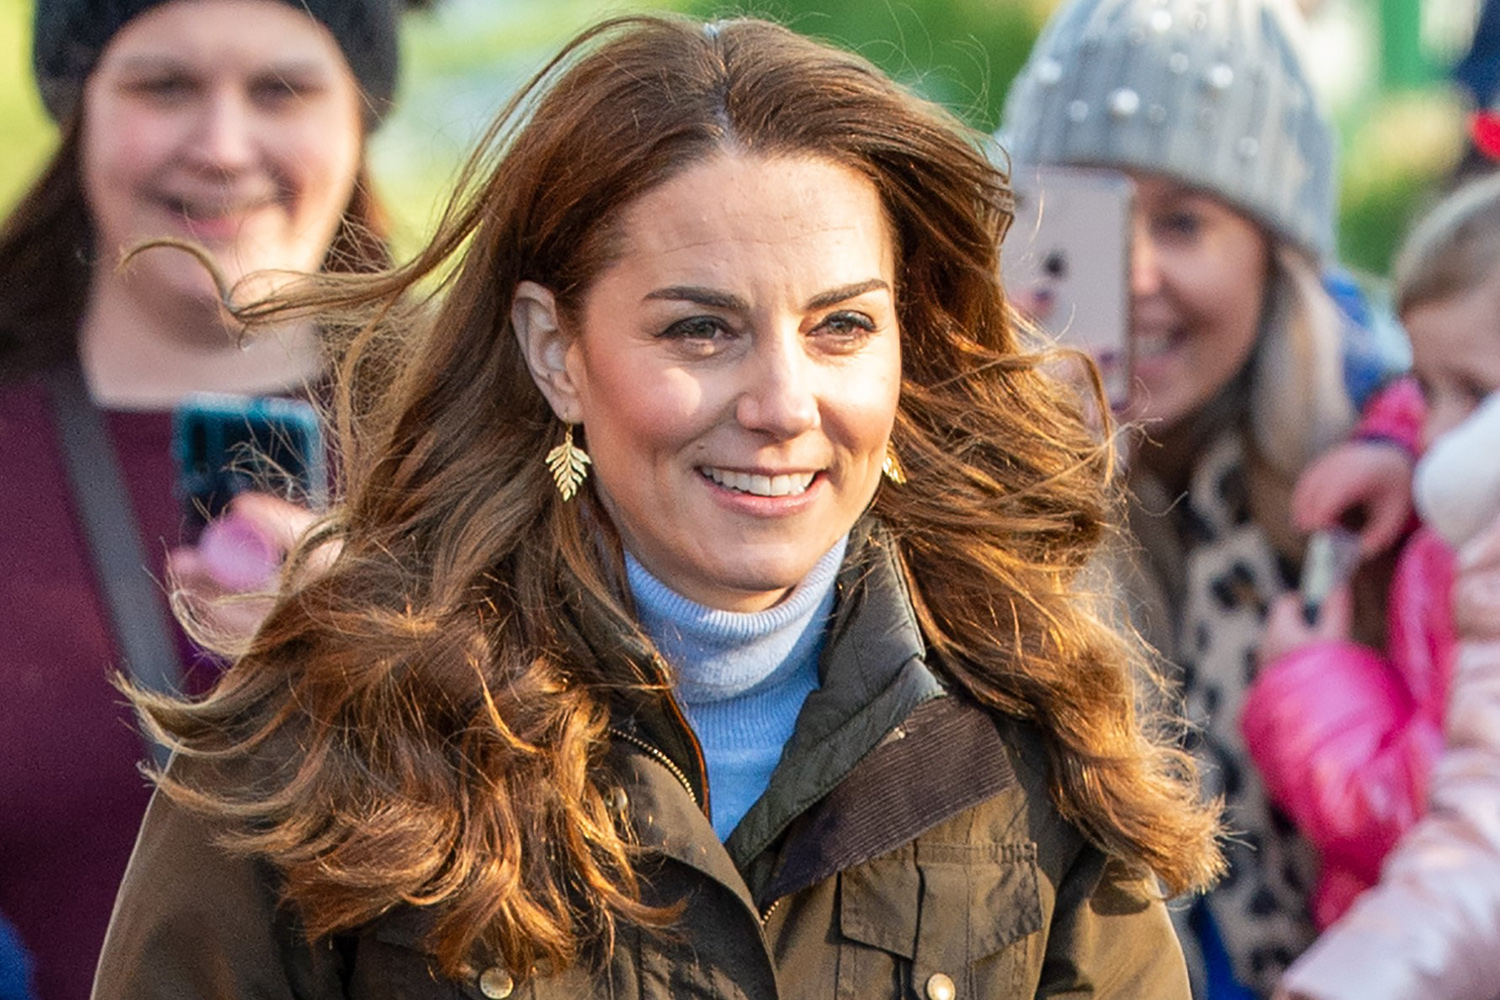 Kensington Palace hits back at claims Kate's 'exhausted and trapped by workload'